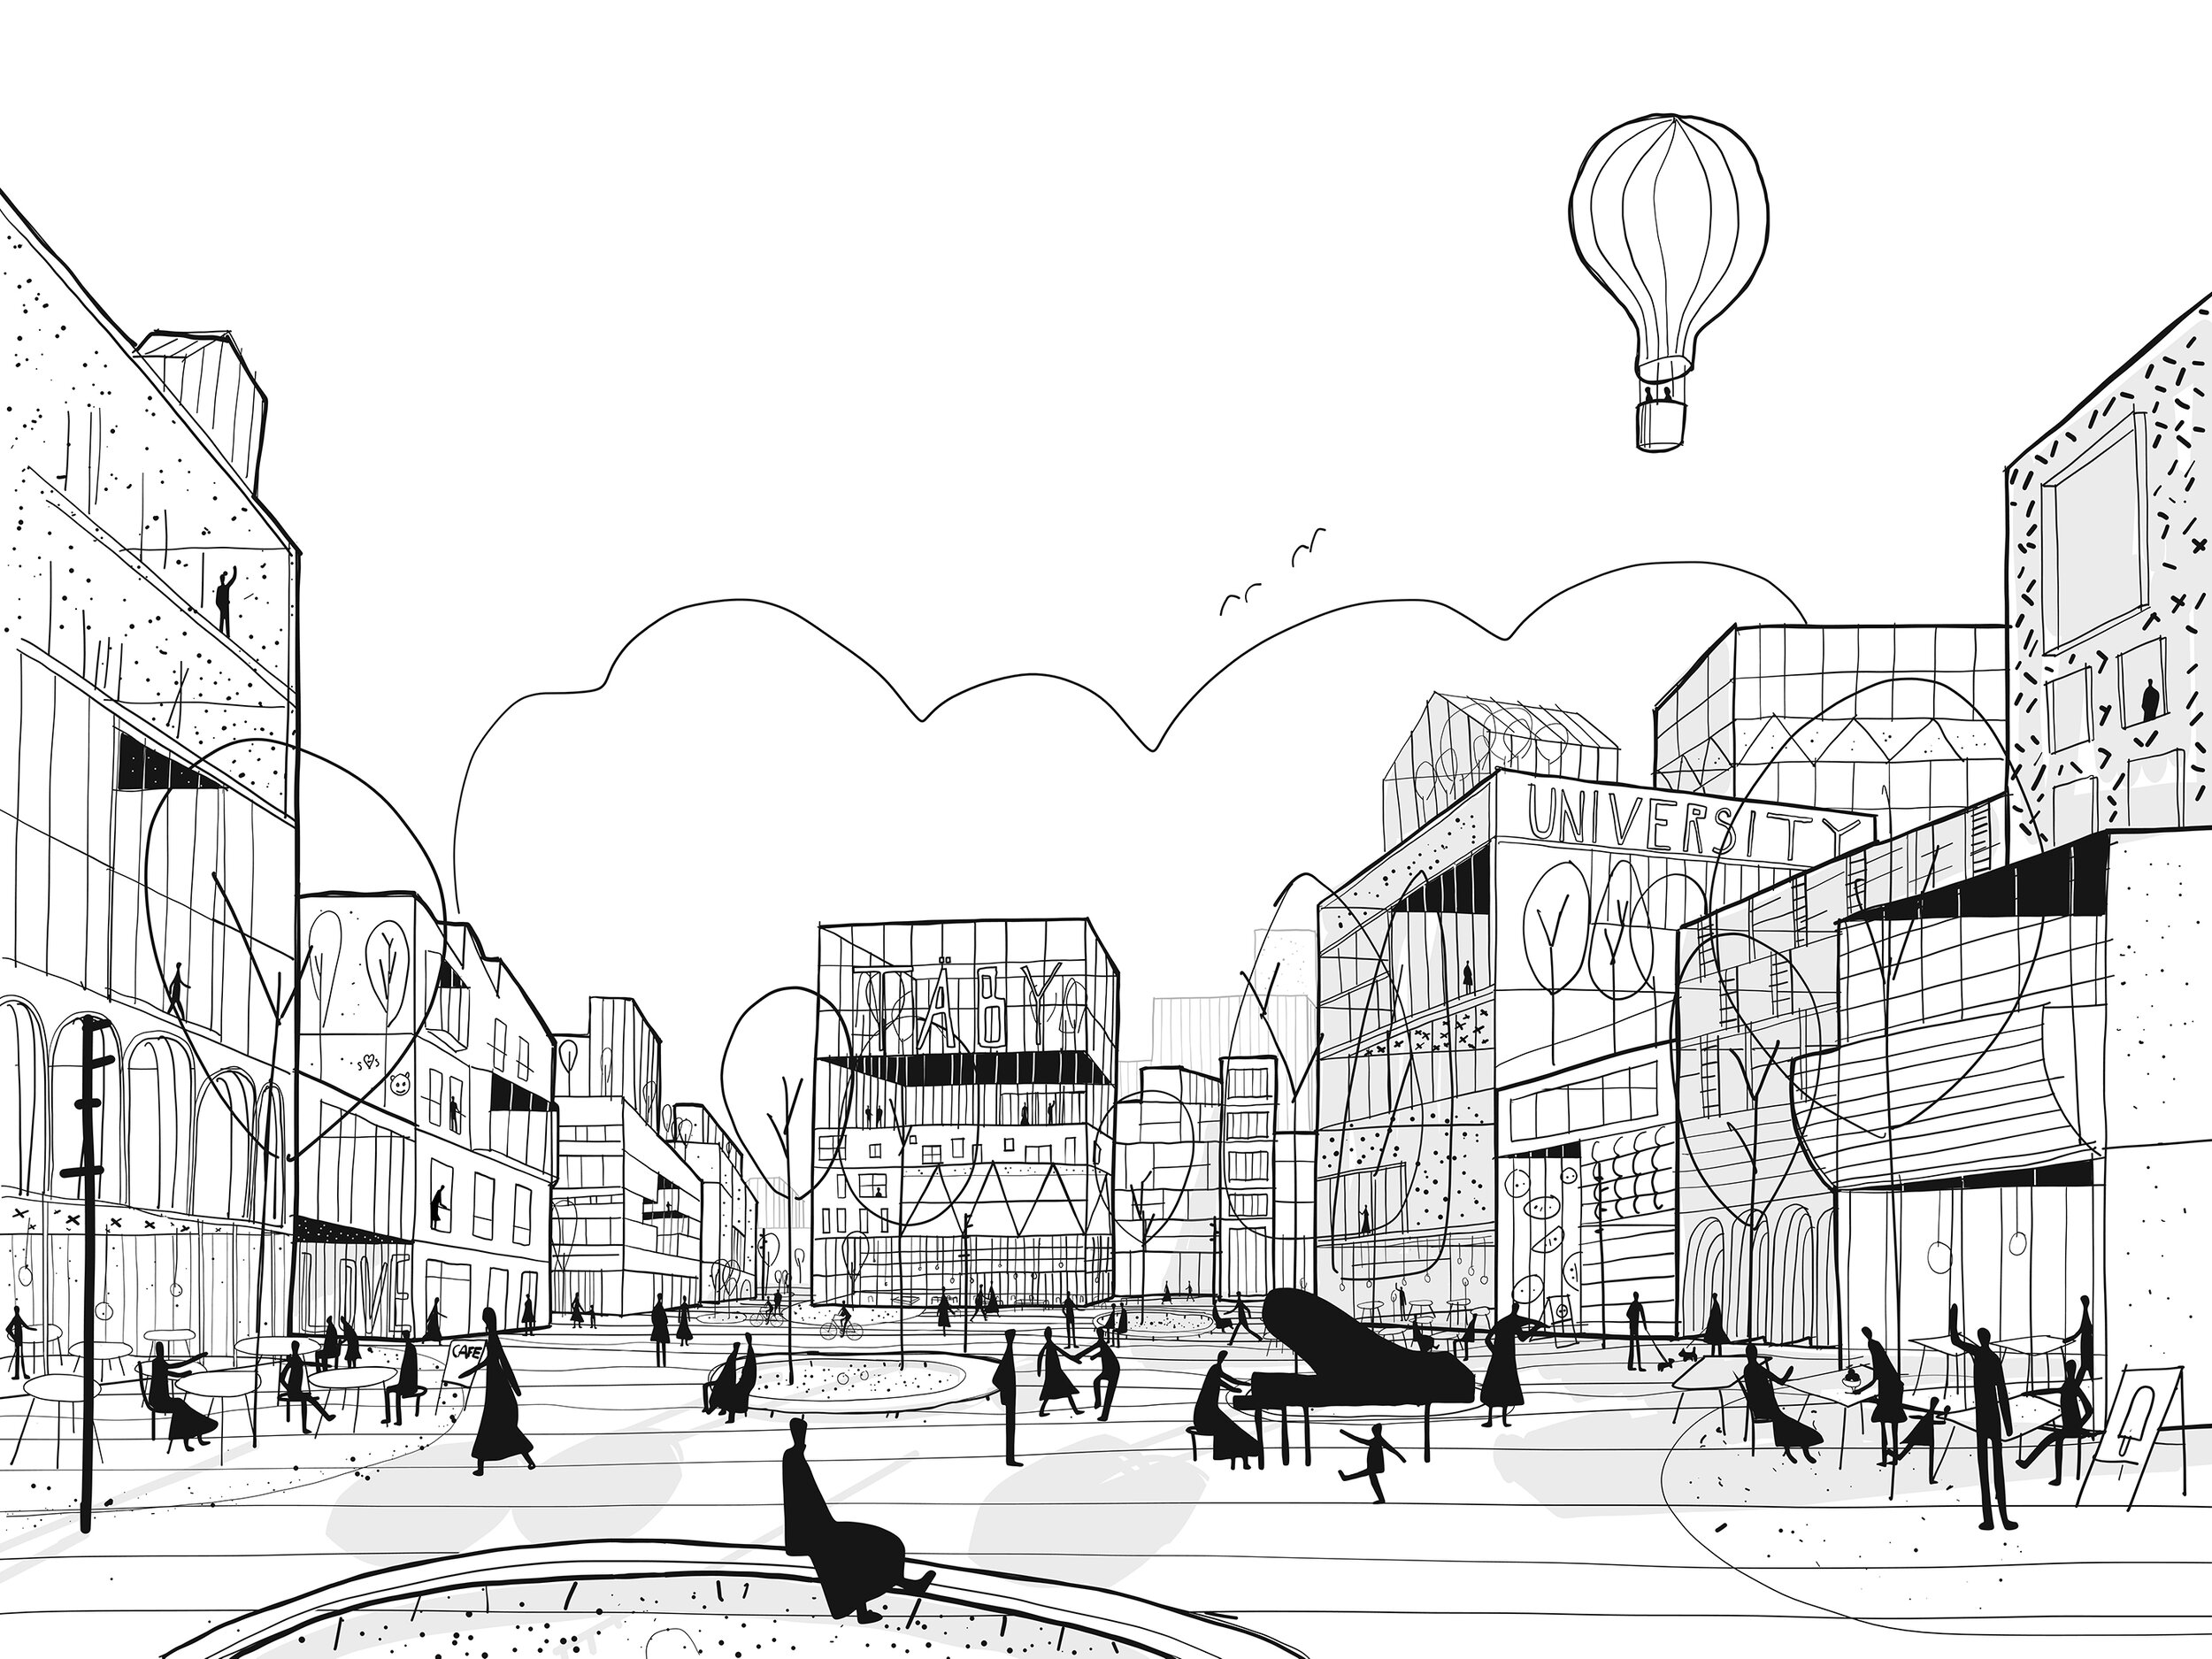 Flexible public space  Tibble will grow on the basis that people's way of moving constantly changes, with a street network that is generous and flexible.